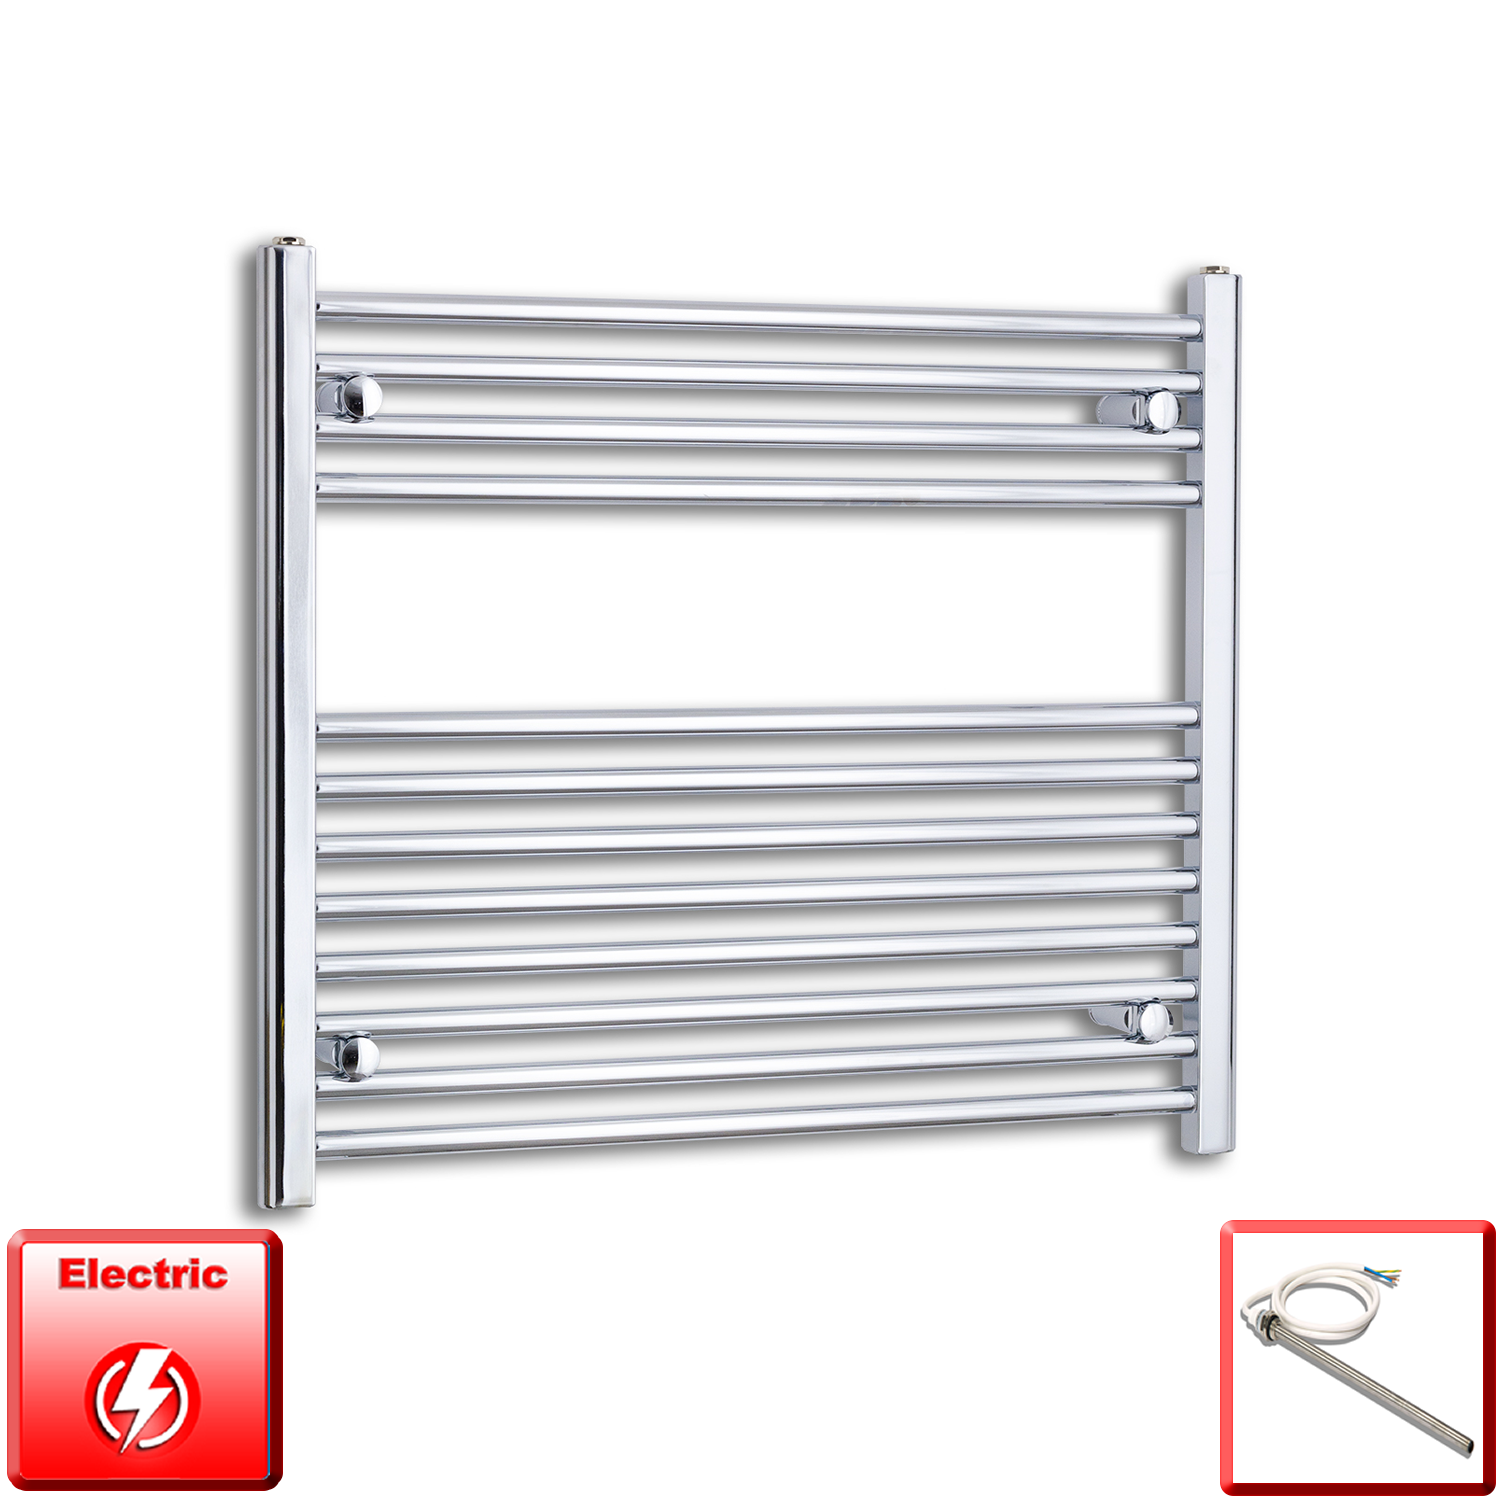 800mm Wide 700mm High Flat Chrome Pre-Filled Electric Heated Towel Rail Radiator HTR,Single Heat Element